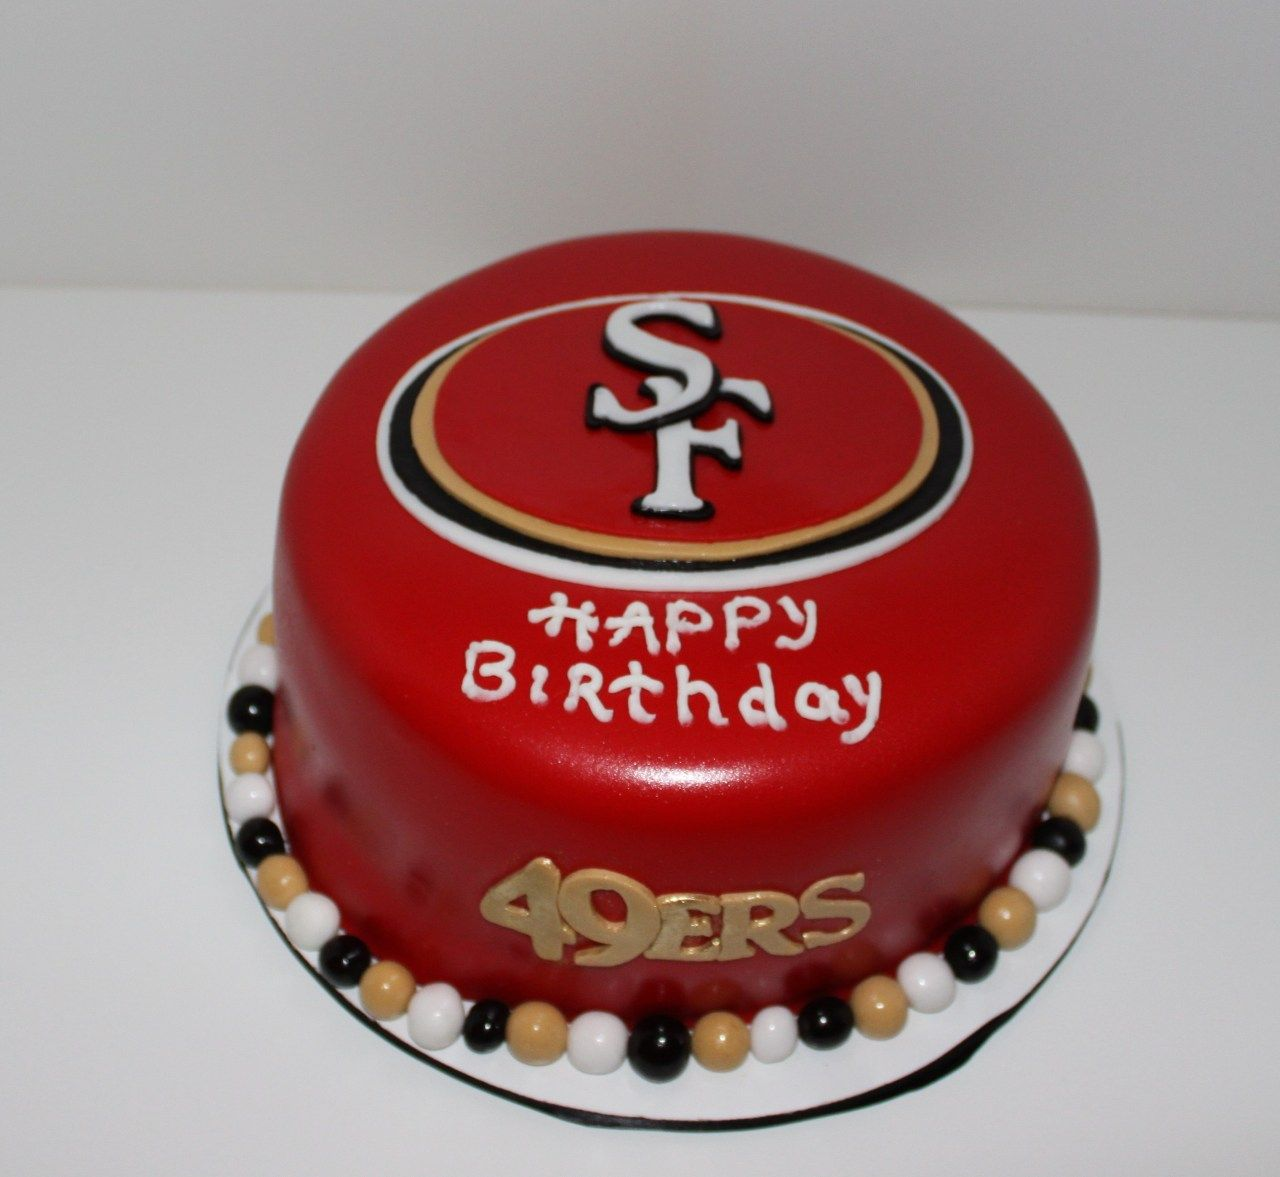 25 Marvelous Photo Of 49ers Birthday Cake With Images 49ers